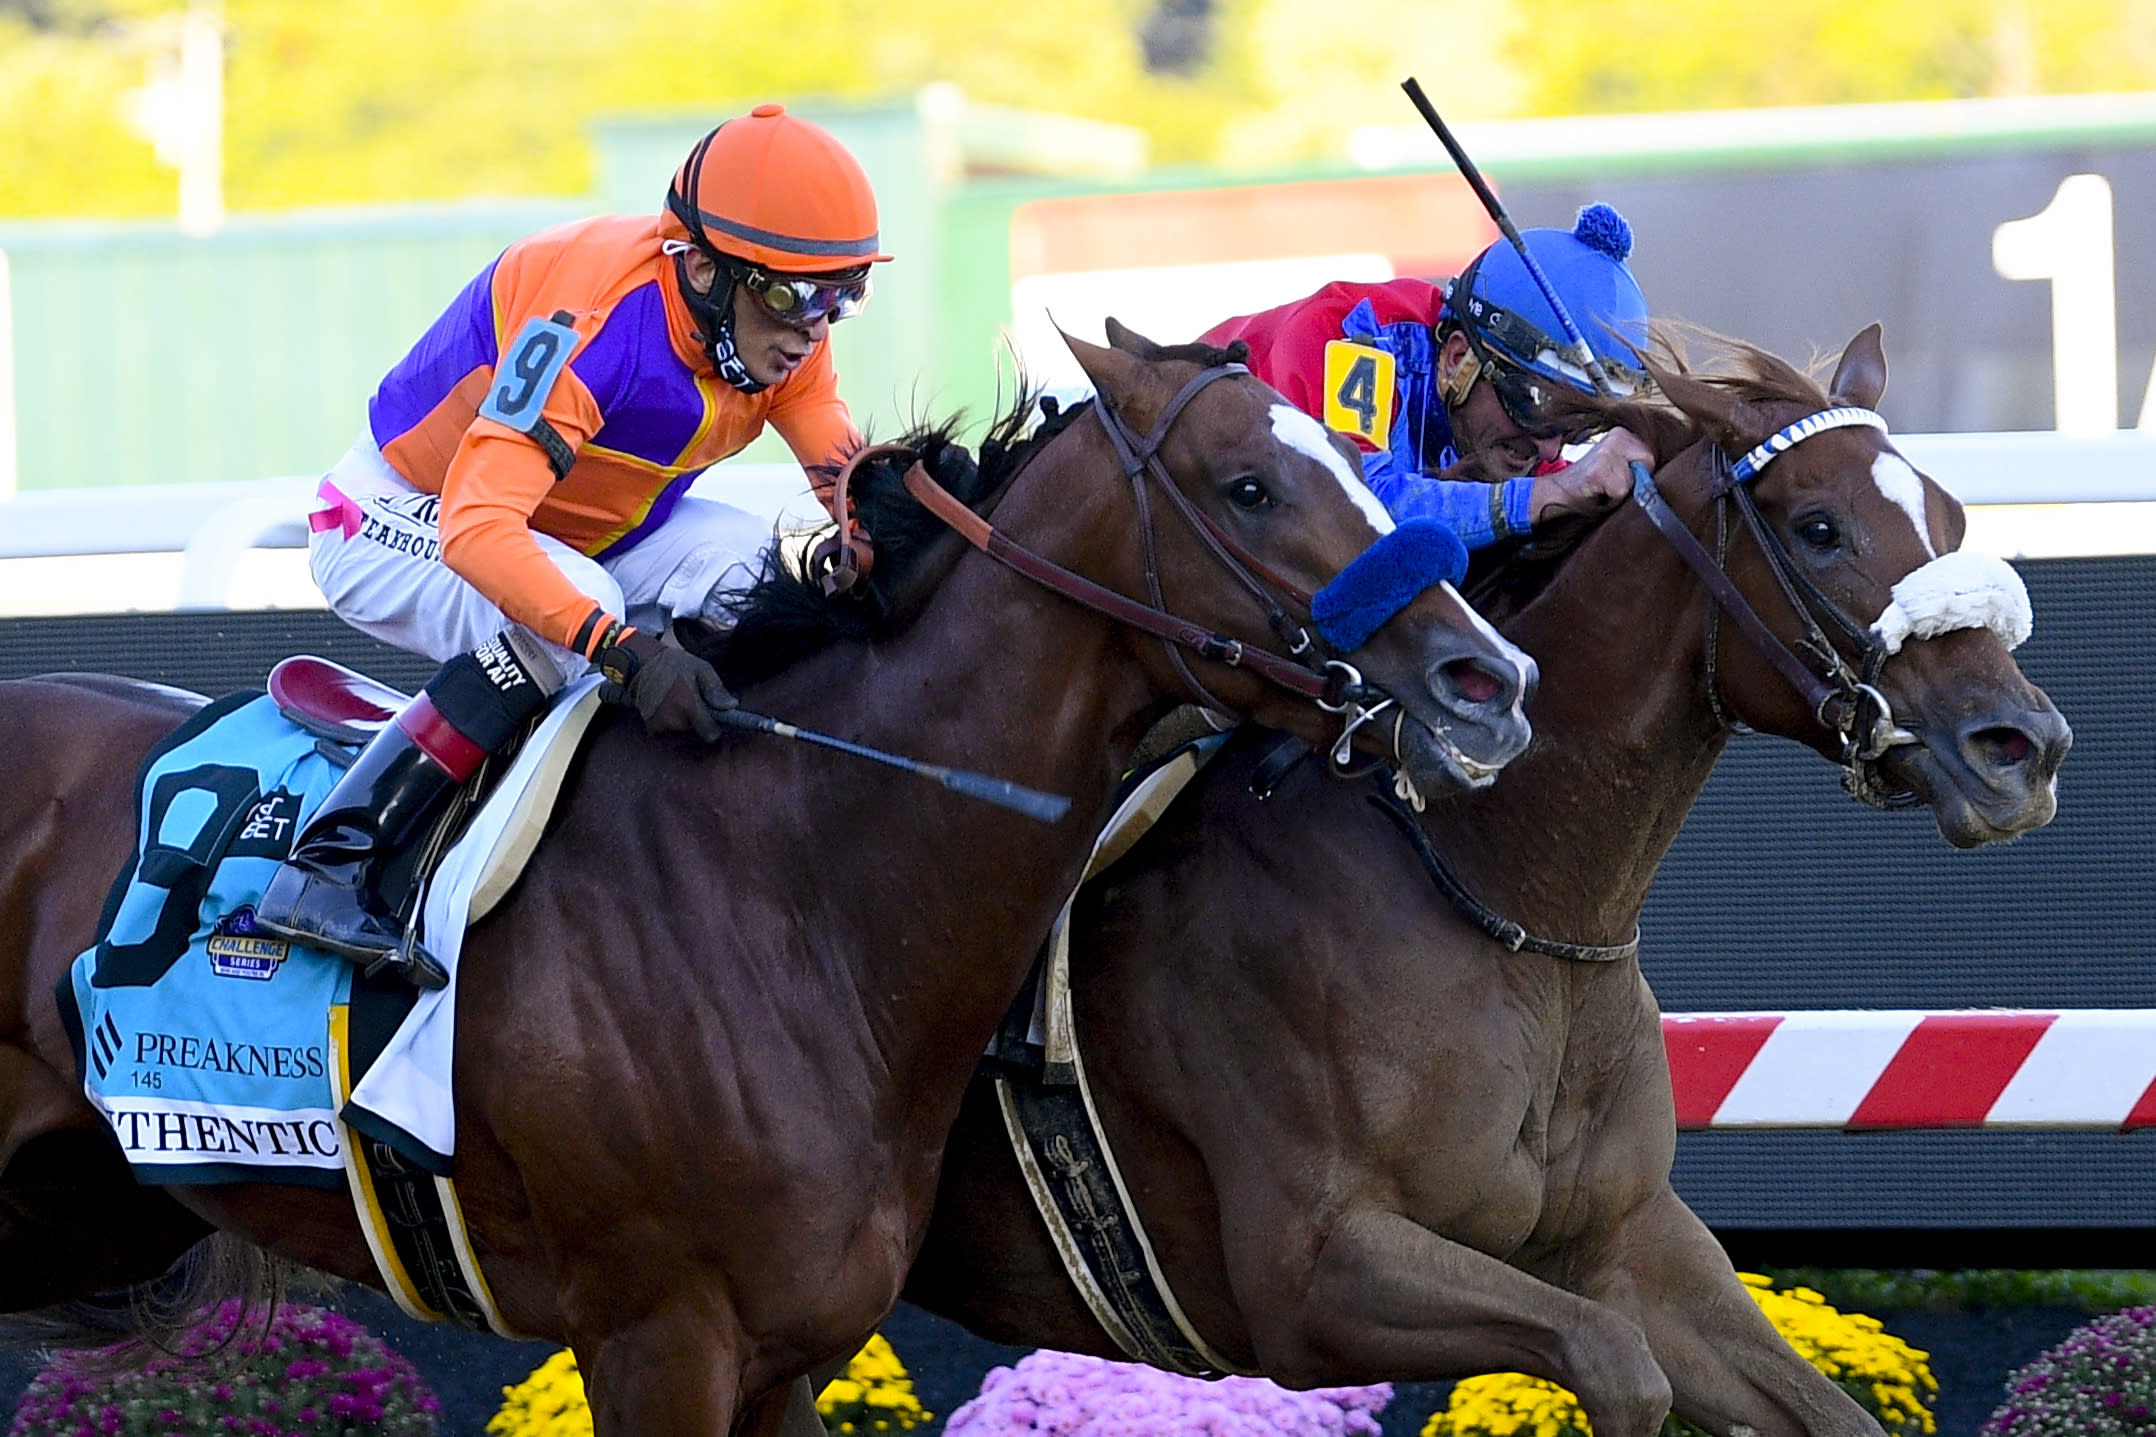 Swiss Skydiver, right, ridden by Robby Albarado, leads Authentic, ridden by John Velazquez, to win the 145th Preakness Stakes horse race at Pimlico Race Course, Saturday, Oct. 3, 2020, in Baltimore. (AP Photo/Nick Wass)